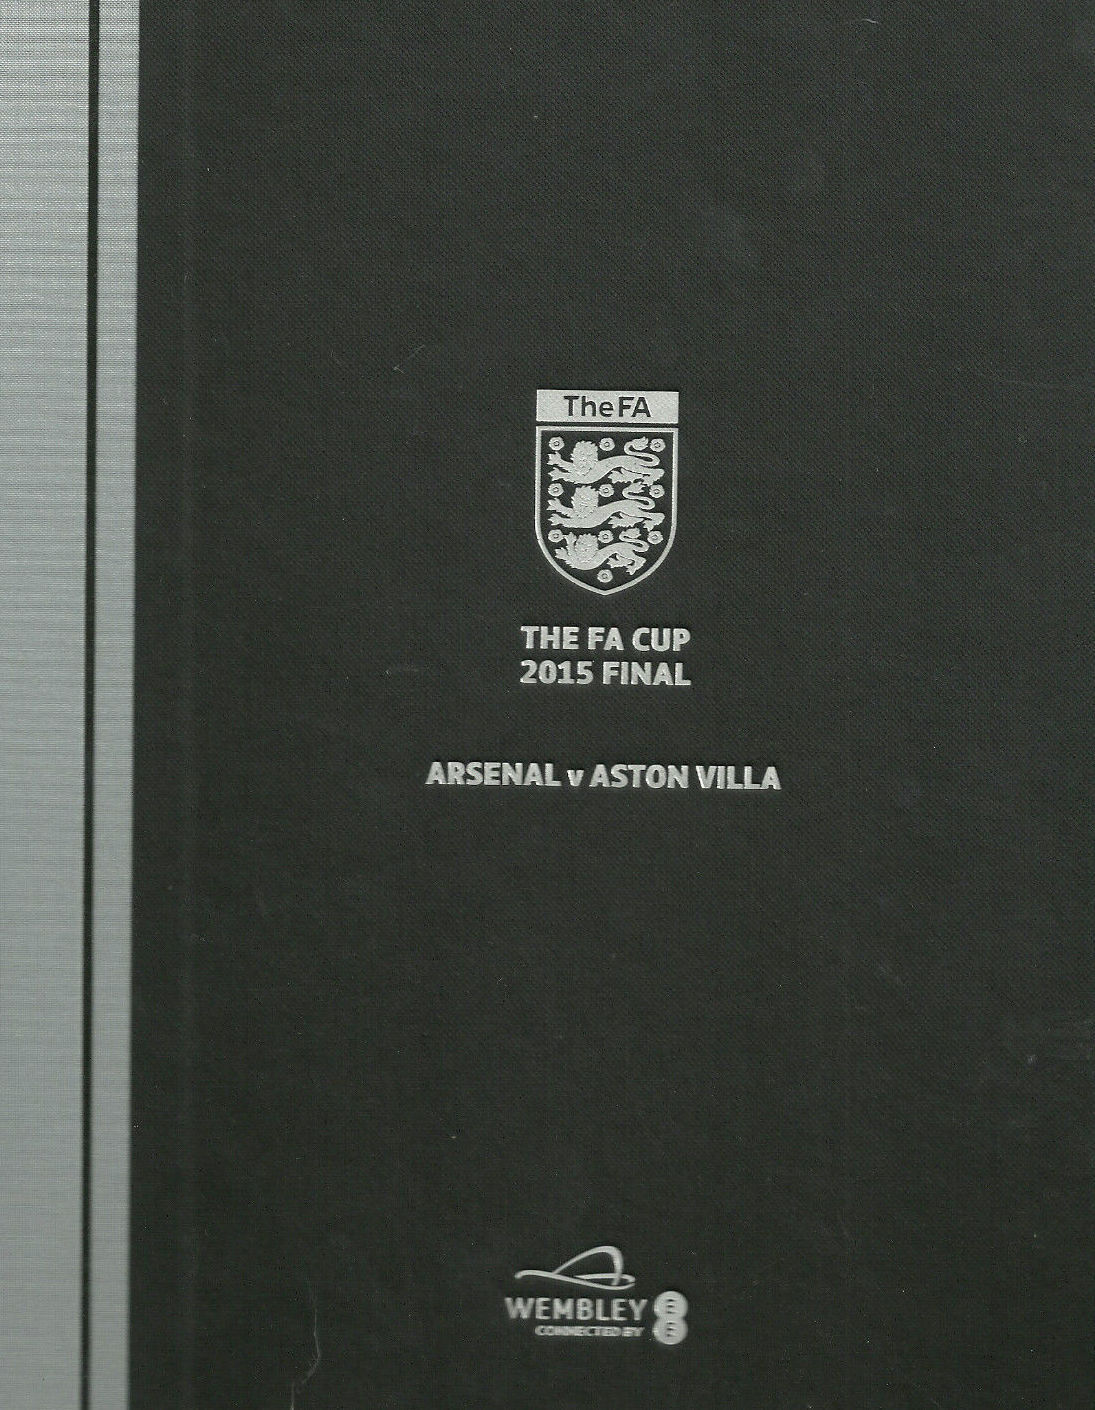 2015 FA CUP FINAL HARDBACK LIMITED EDITION ARSENAL v ASTON VILLA